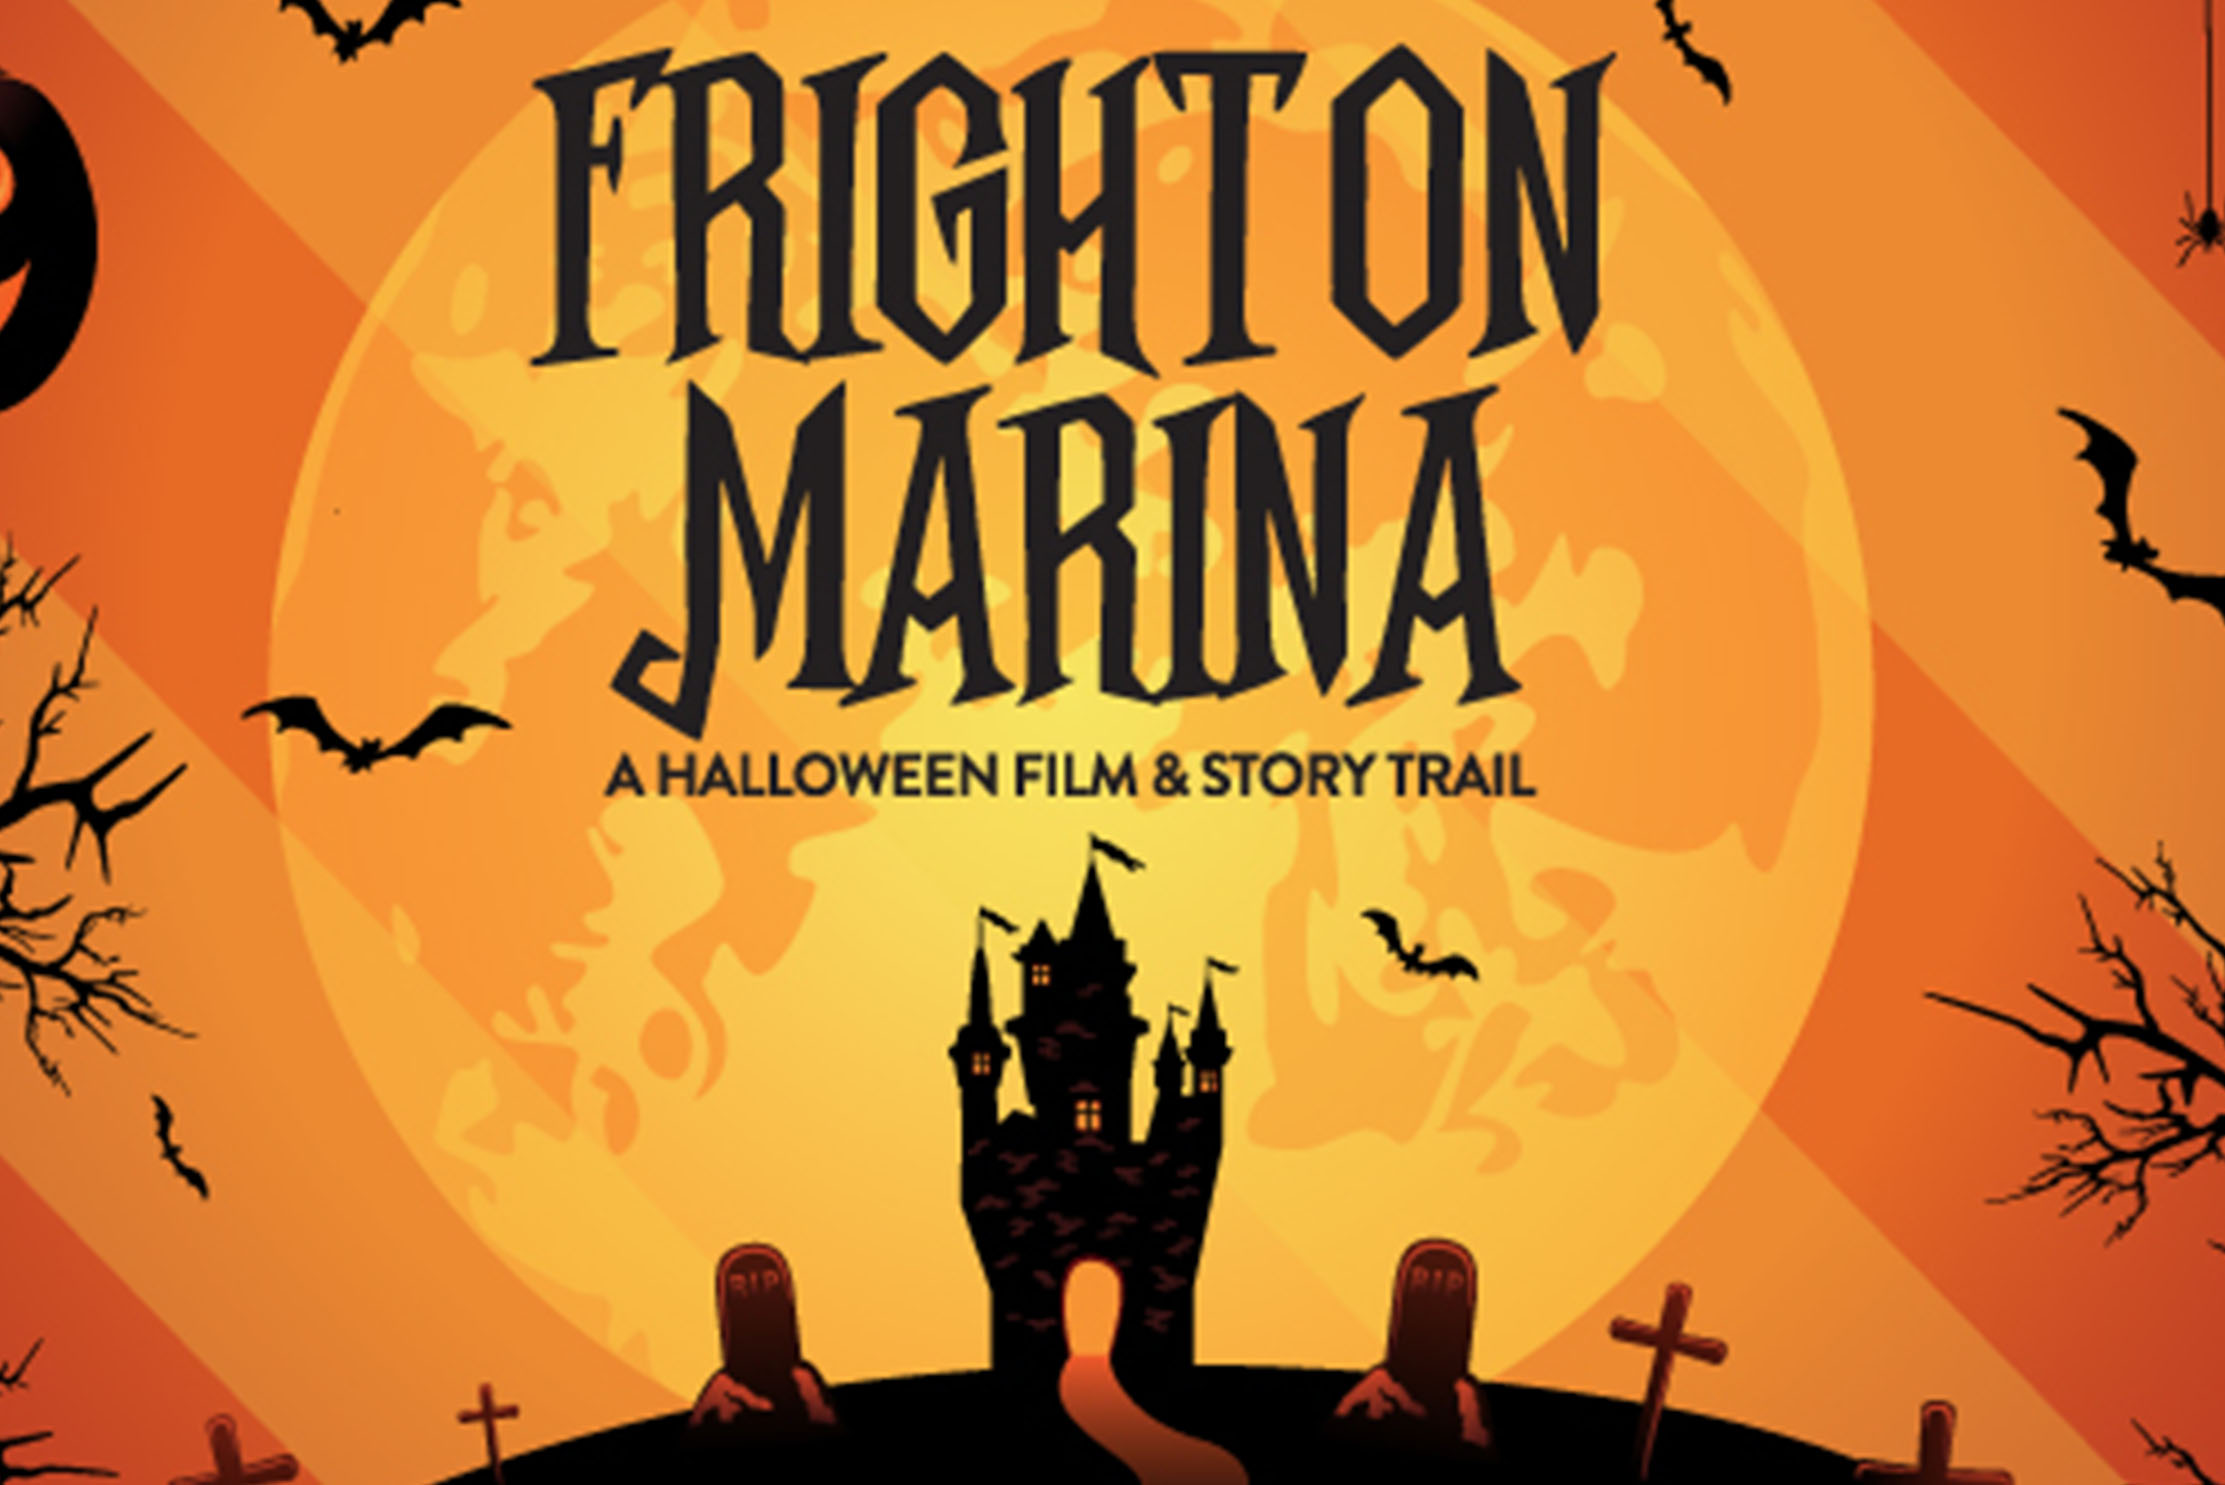 BN1 Magazine looks at the best in half-term Halloween fun across Brighton & Hove and Sussex to keep the little ones entertained